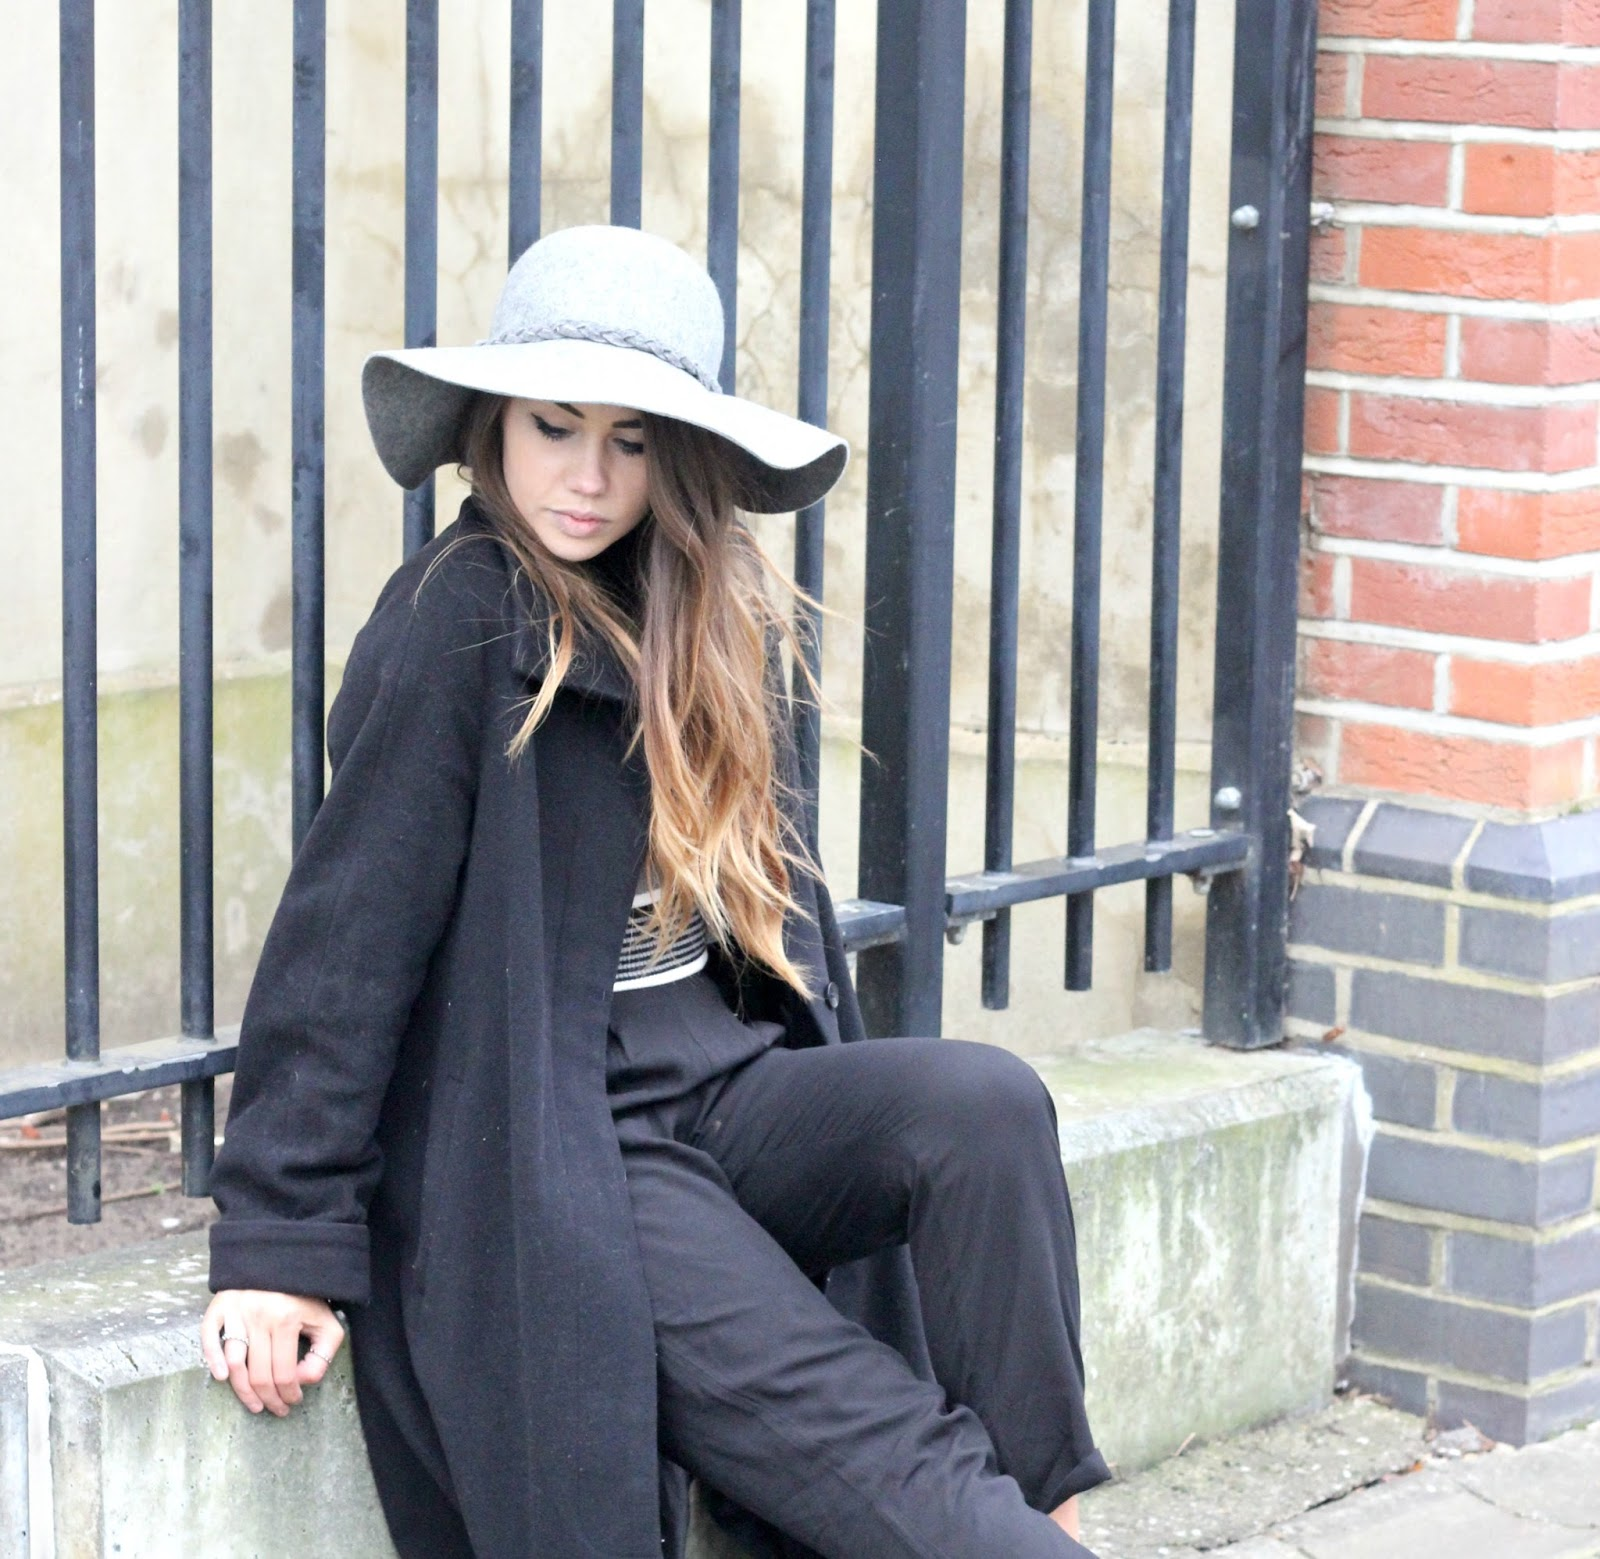 black and white outfit, monochrome, copper garden, high street lookbook